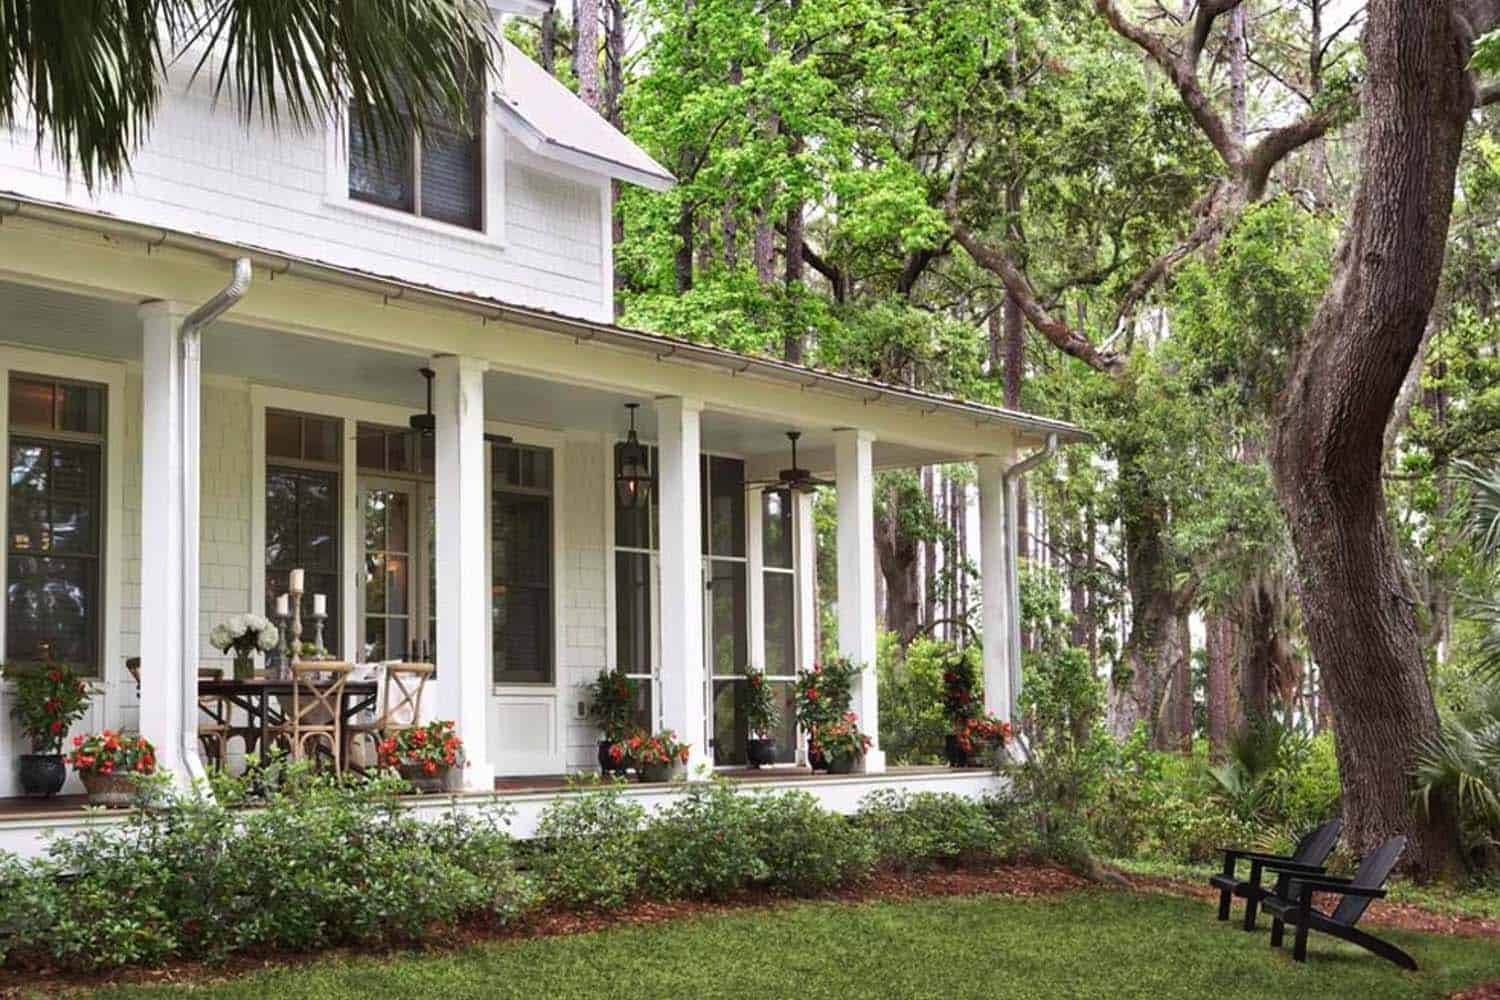 Lowcountry Style Home-Linda McDougald Design-19-1 Kindesign